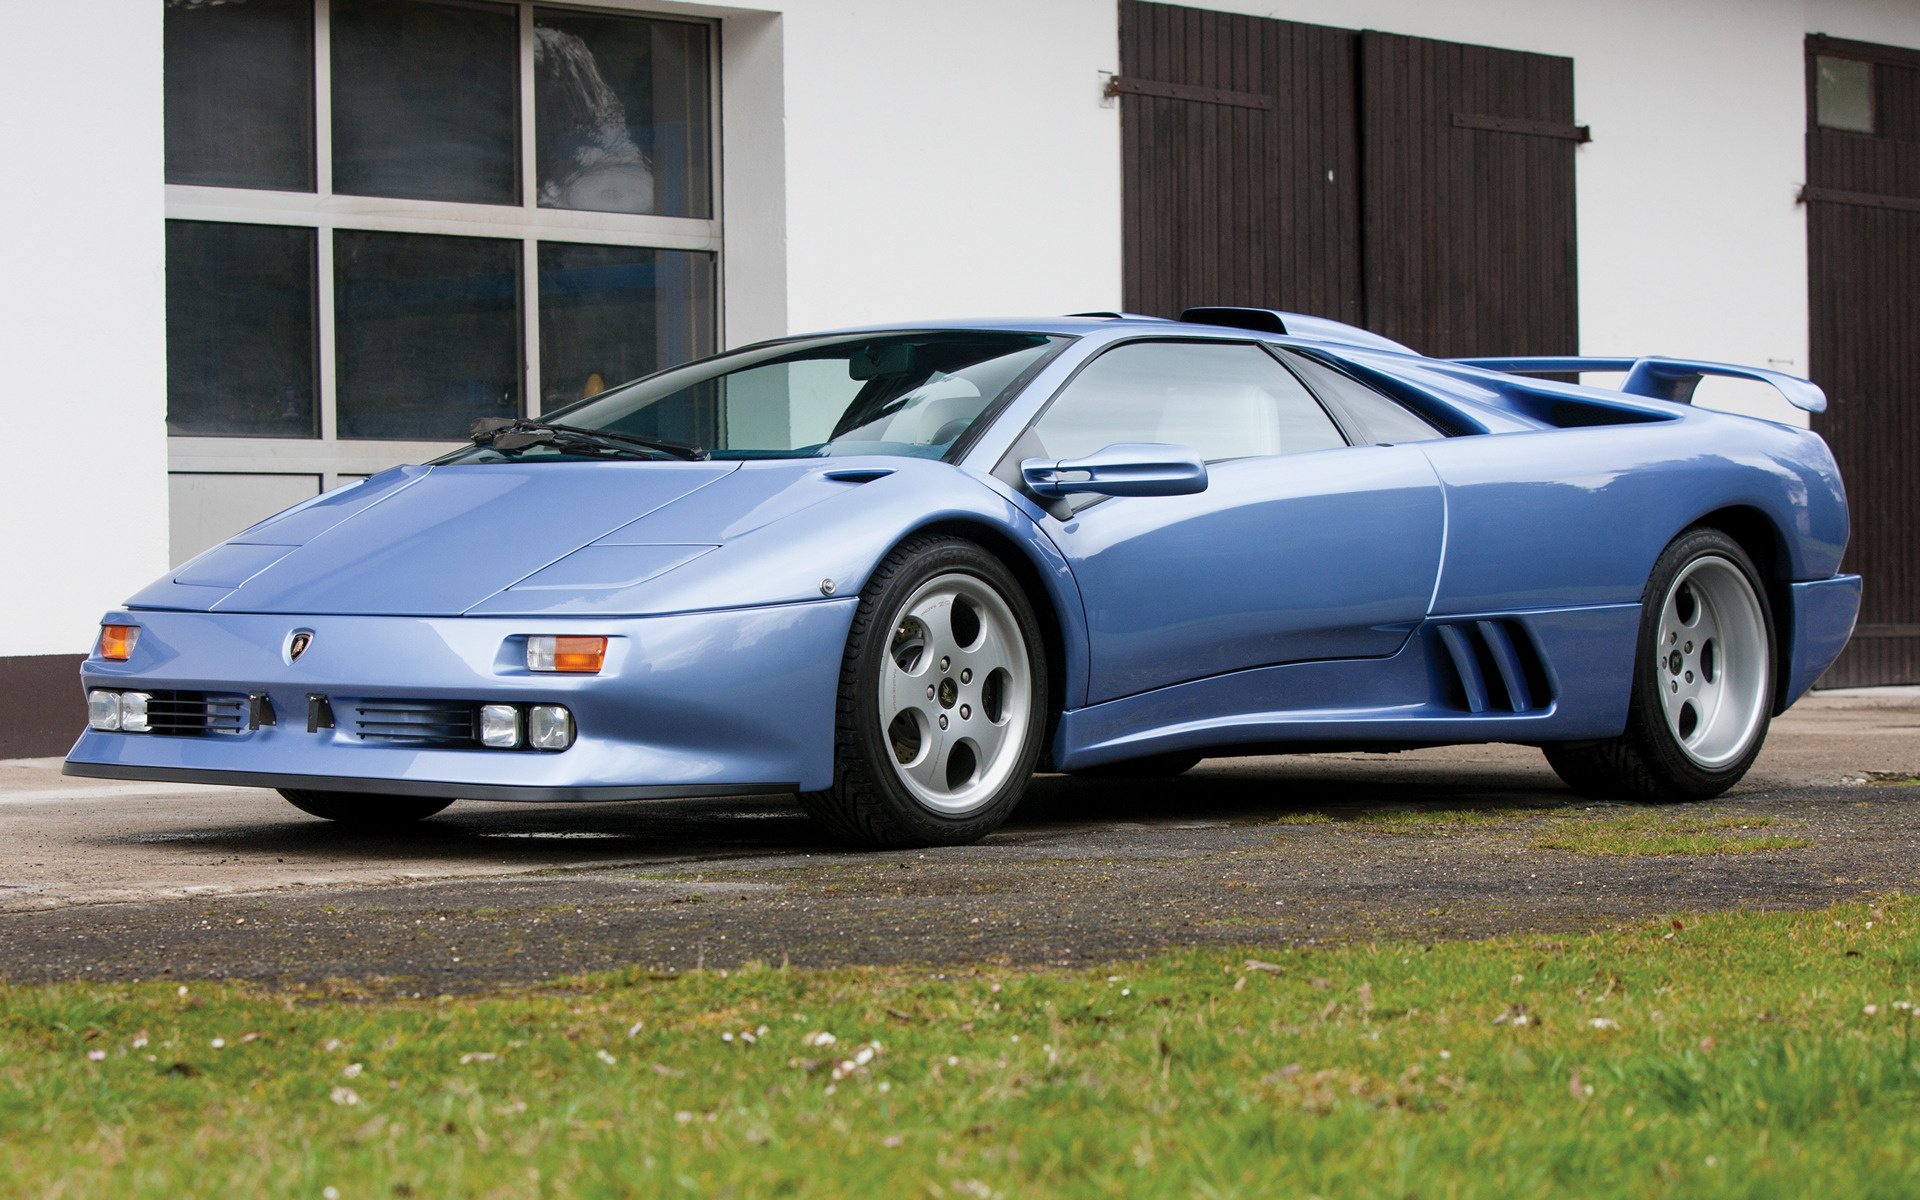 1995 Lamborghini Diablo Se30 Jota Wallpapers And Hd